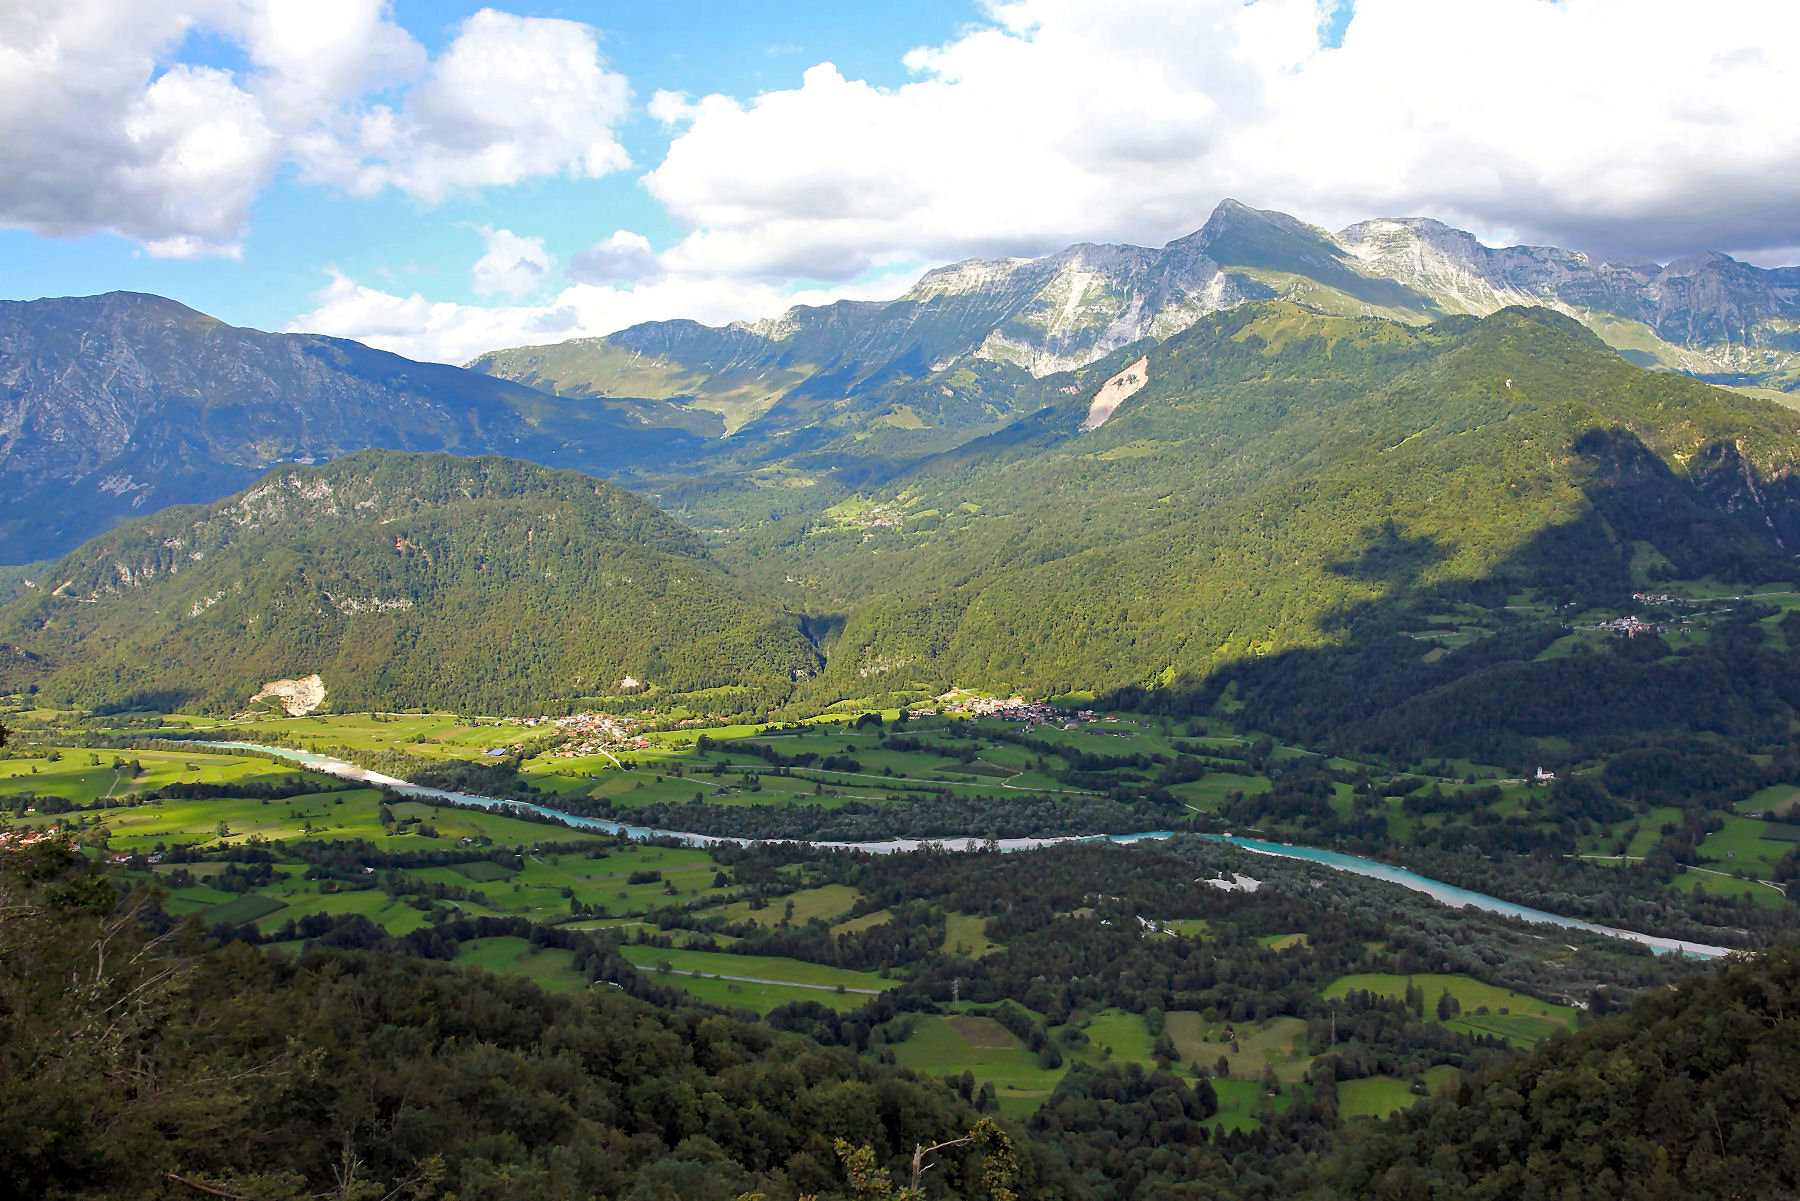 Soca Valley is an area of outstanding unspoilt natural beauty